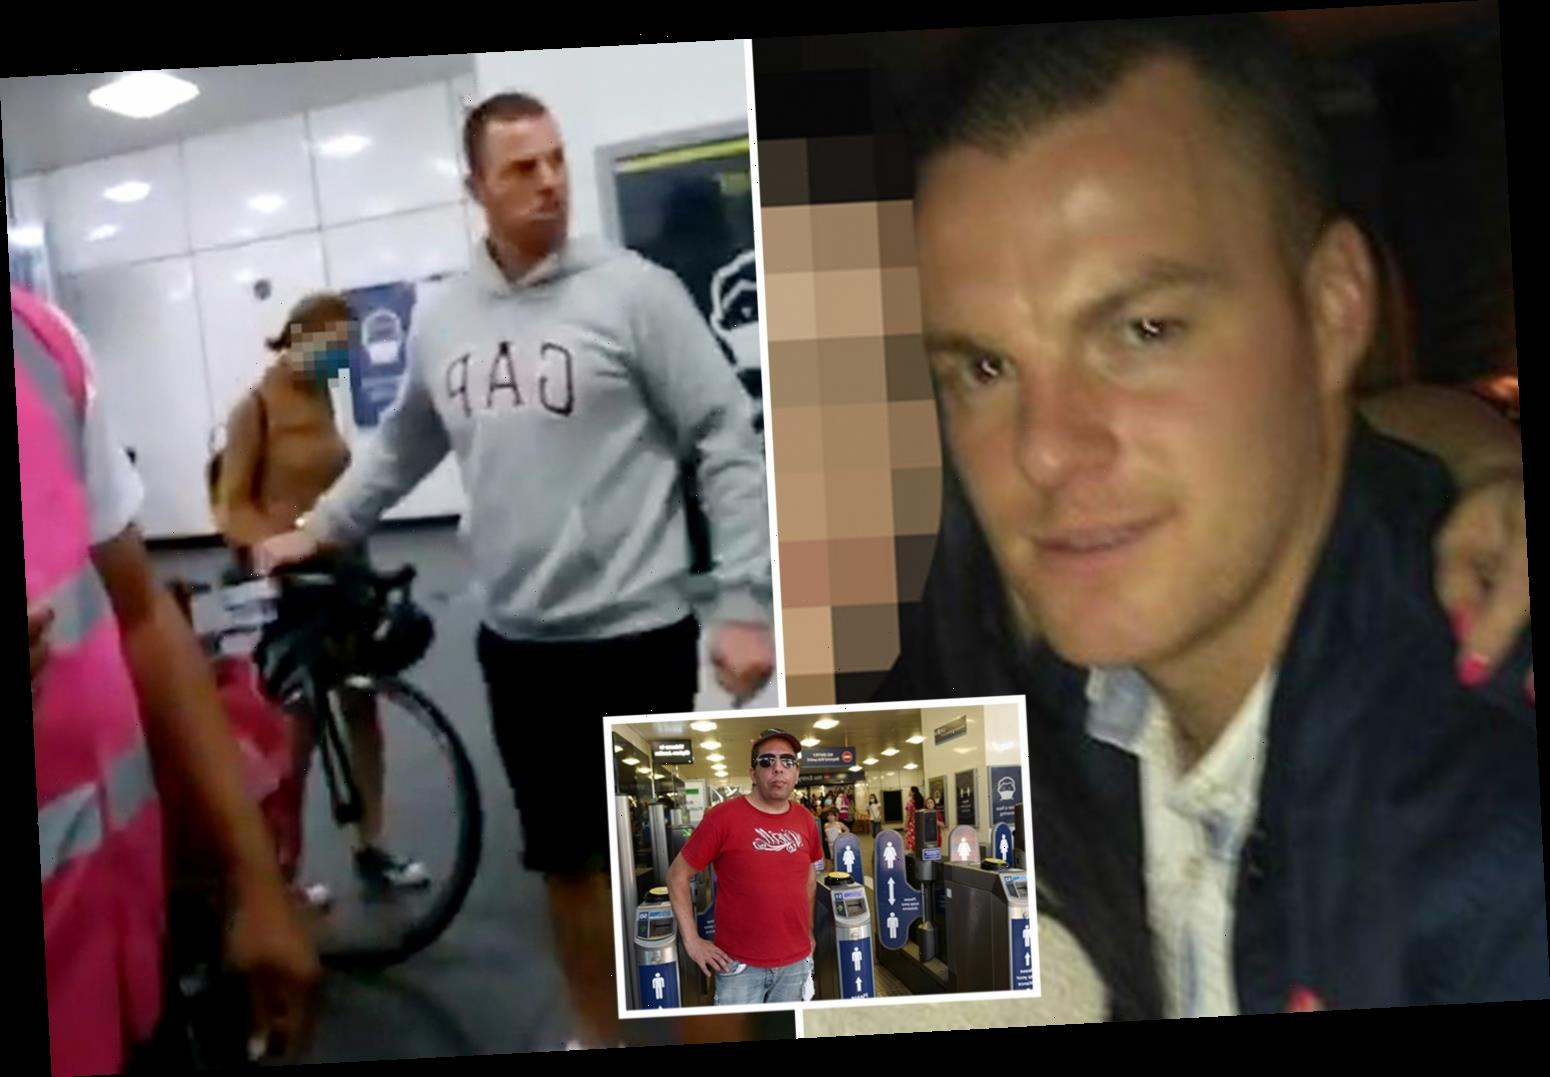 Mum's shame as man who 'knocked out commuter in London station mask row' revealed as scaffolder dad-of-one